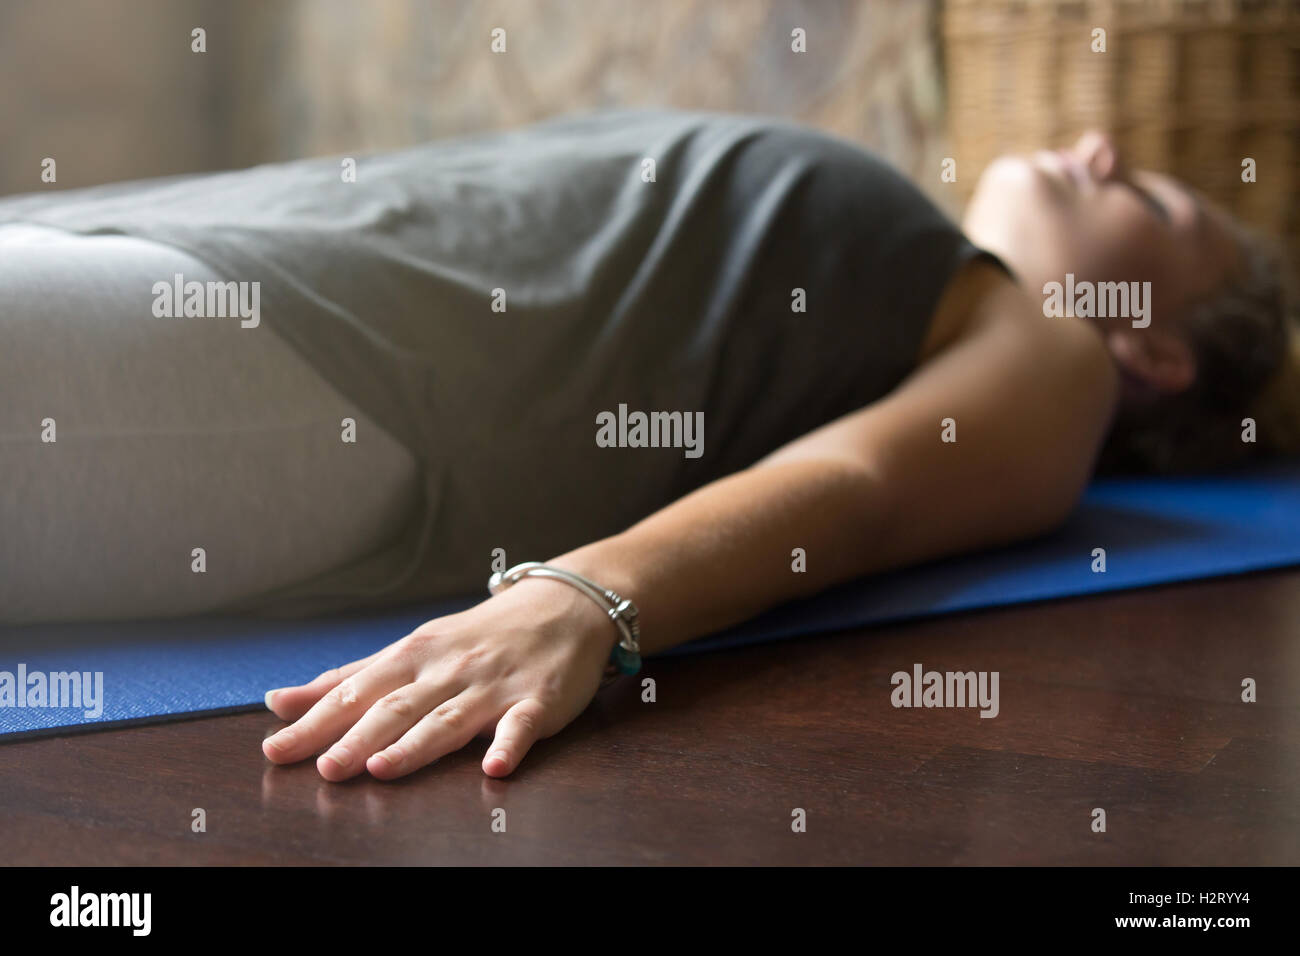 Yoga at home: Corpse Pose - Stock Image